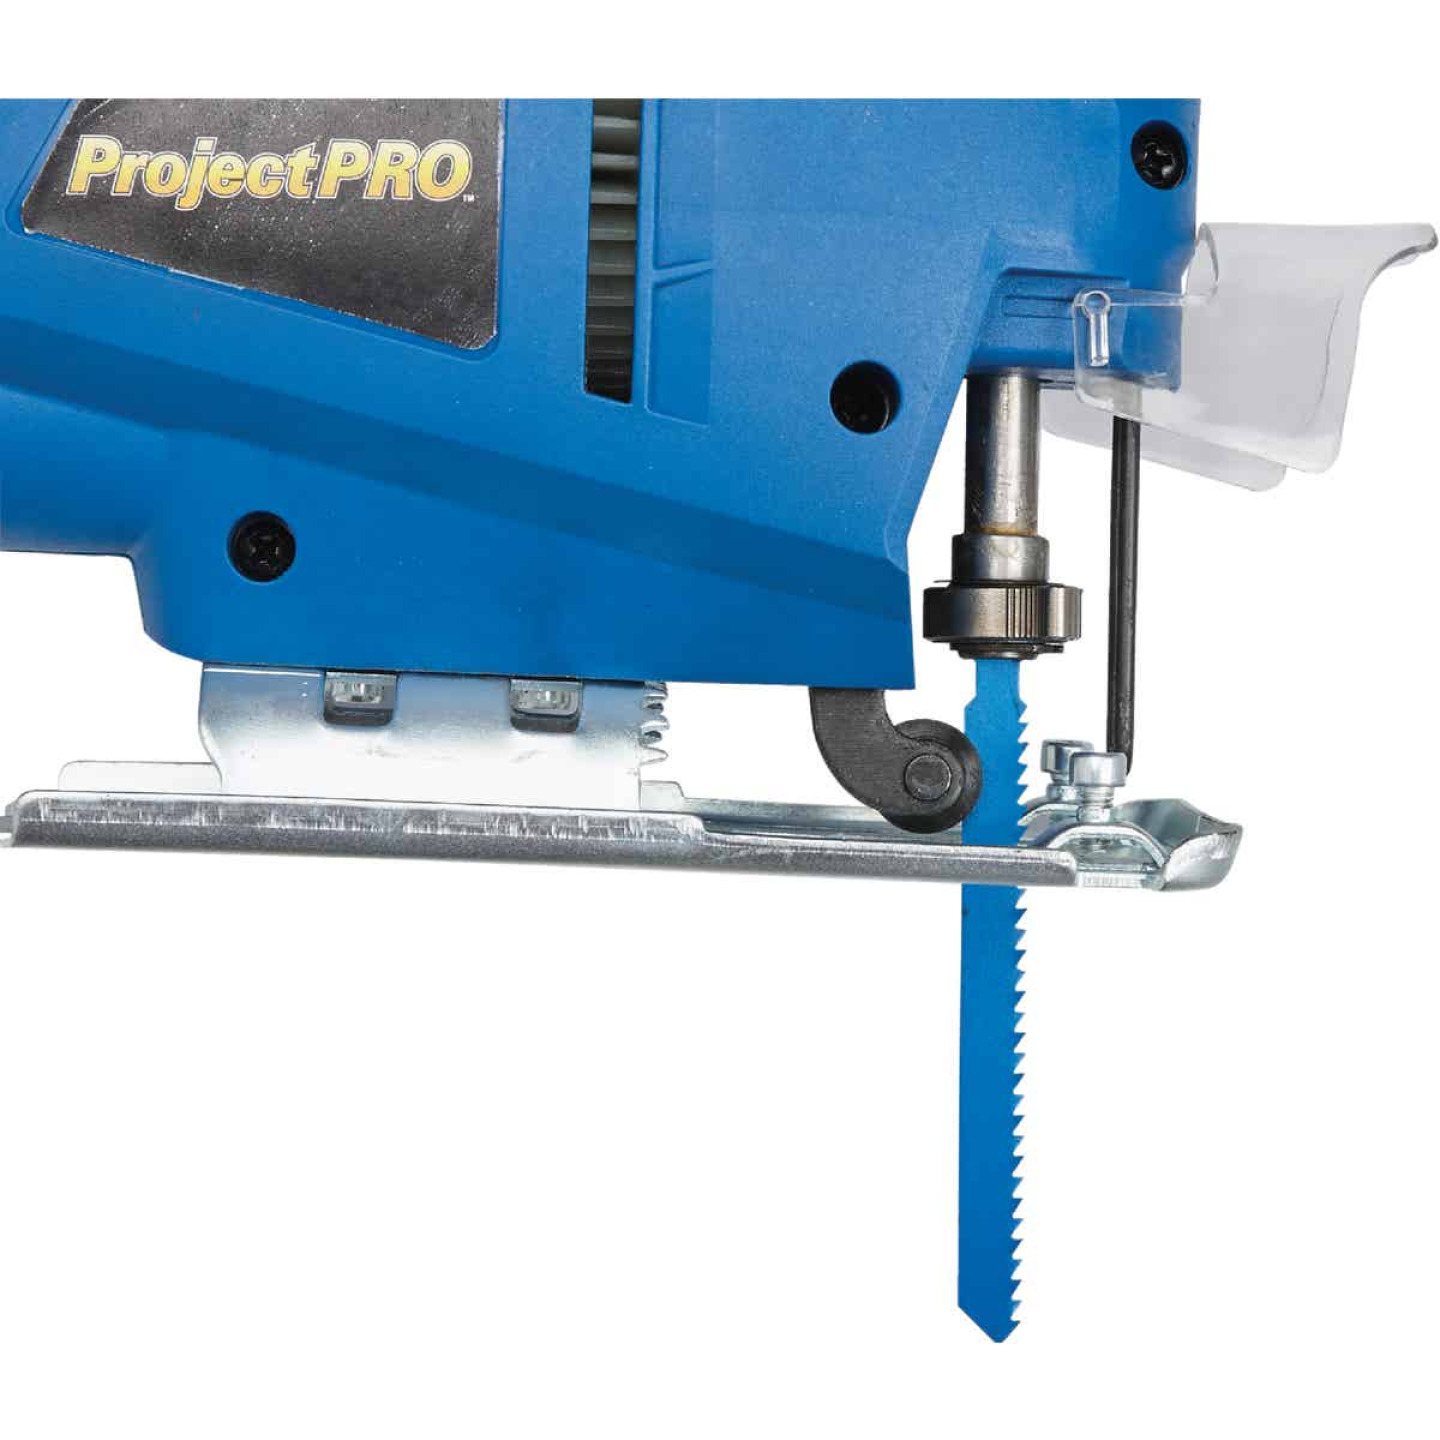 Project Pro 4.5A 0-3000 SPM Speed Jig Saw Image 6